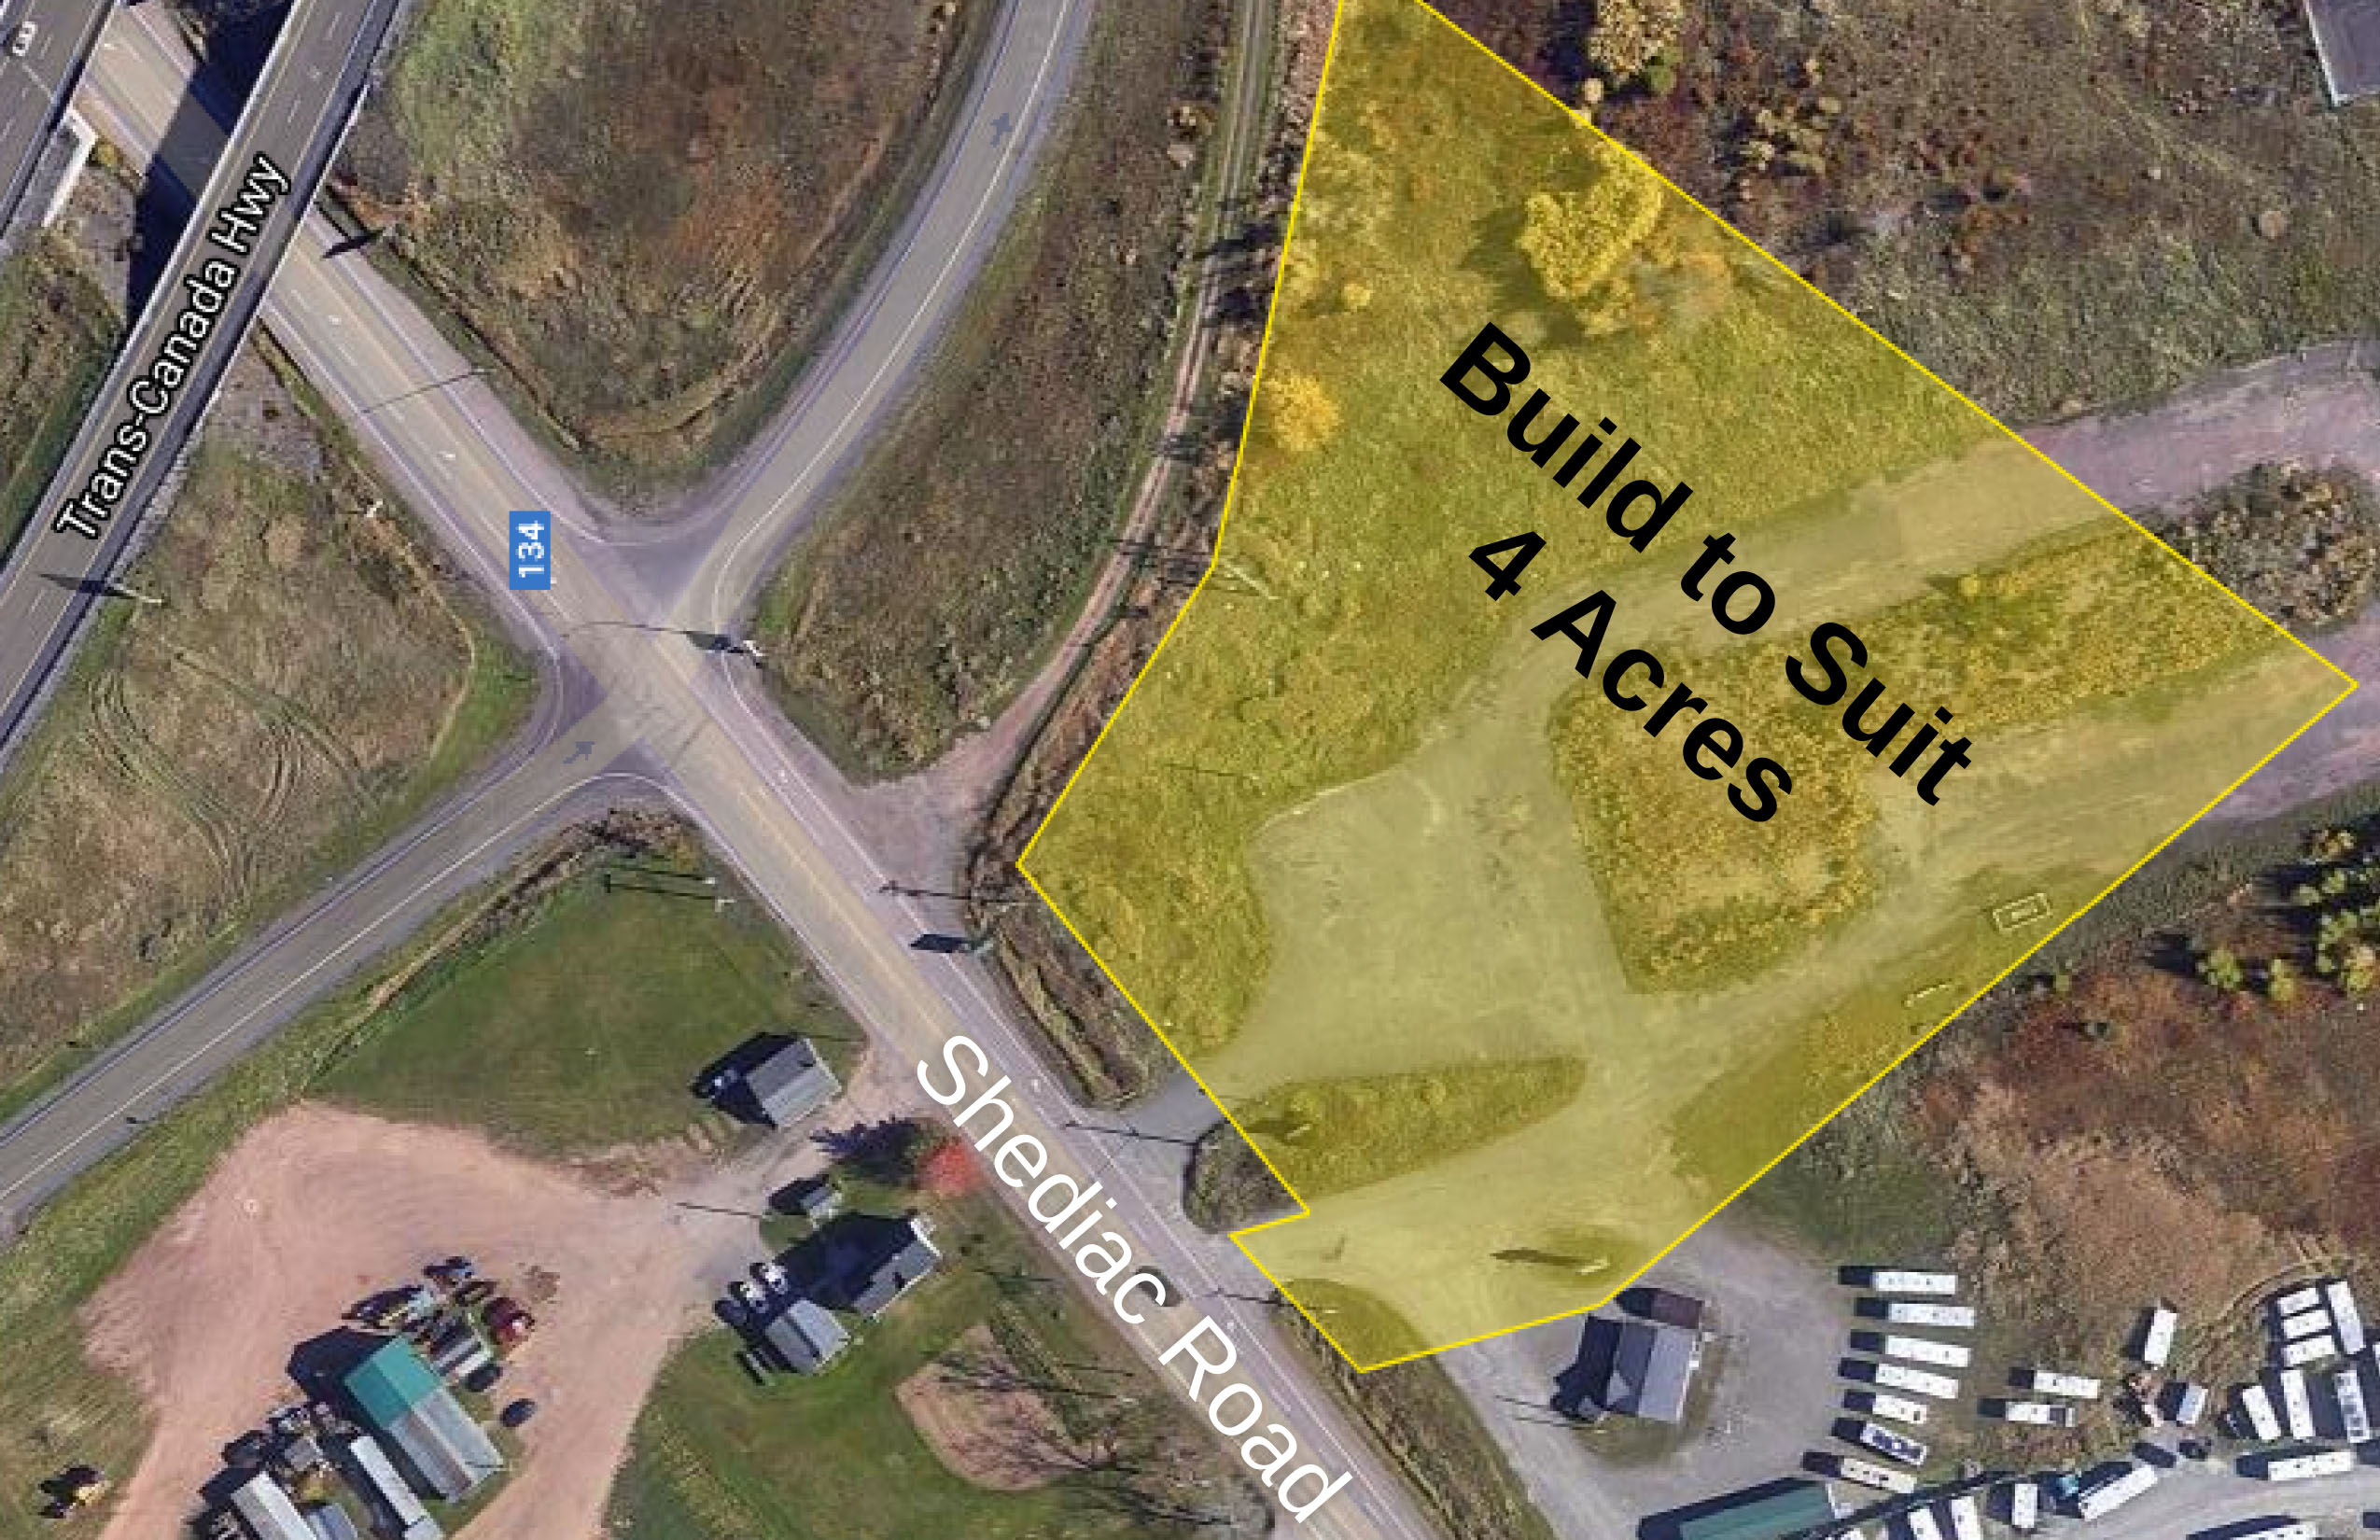 map view of future build to suit locations near Shediac Road